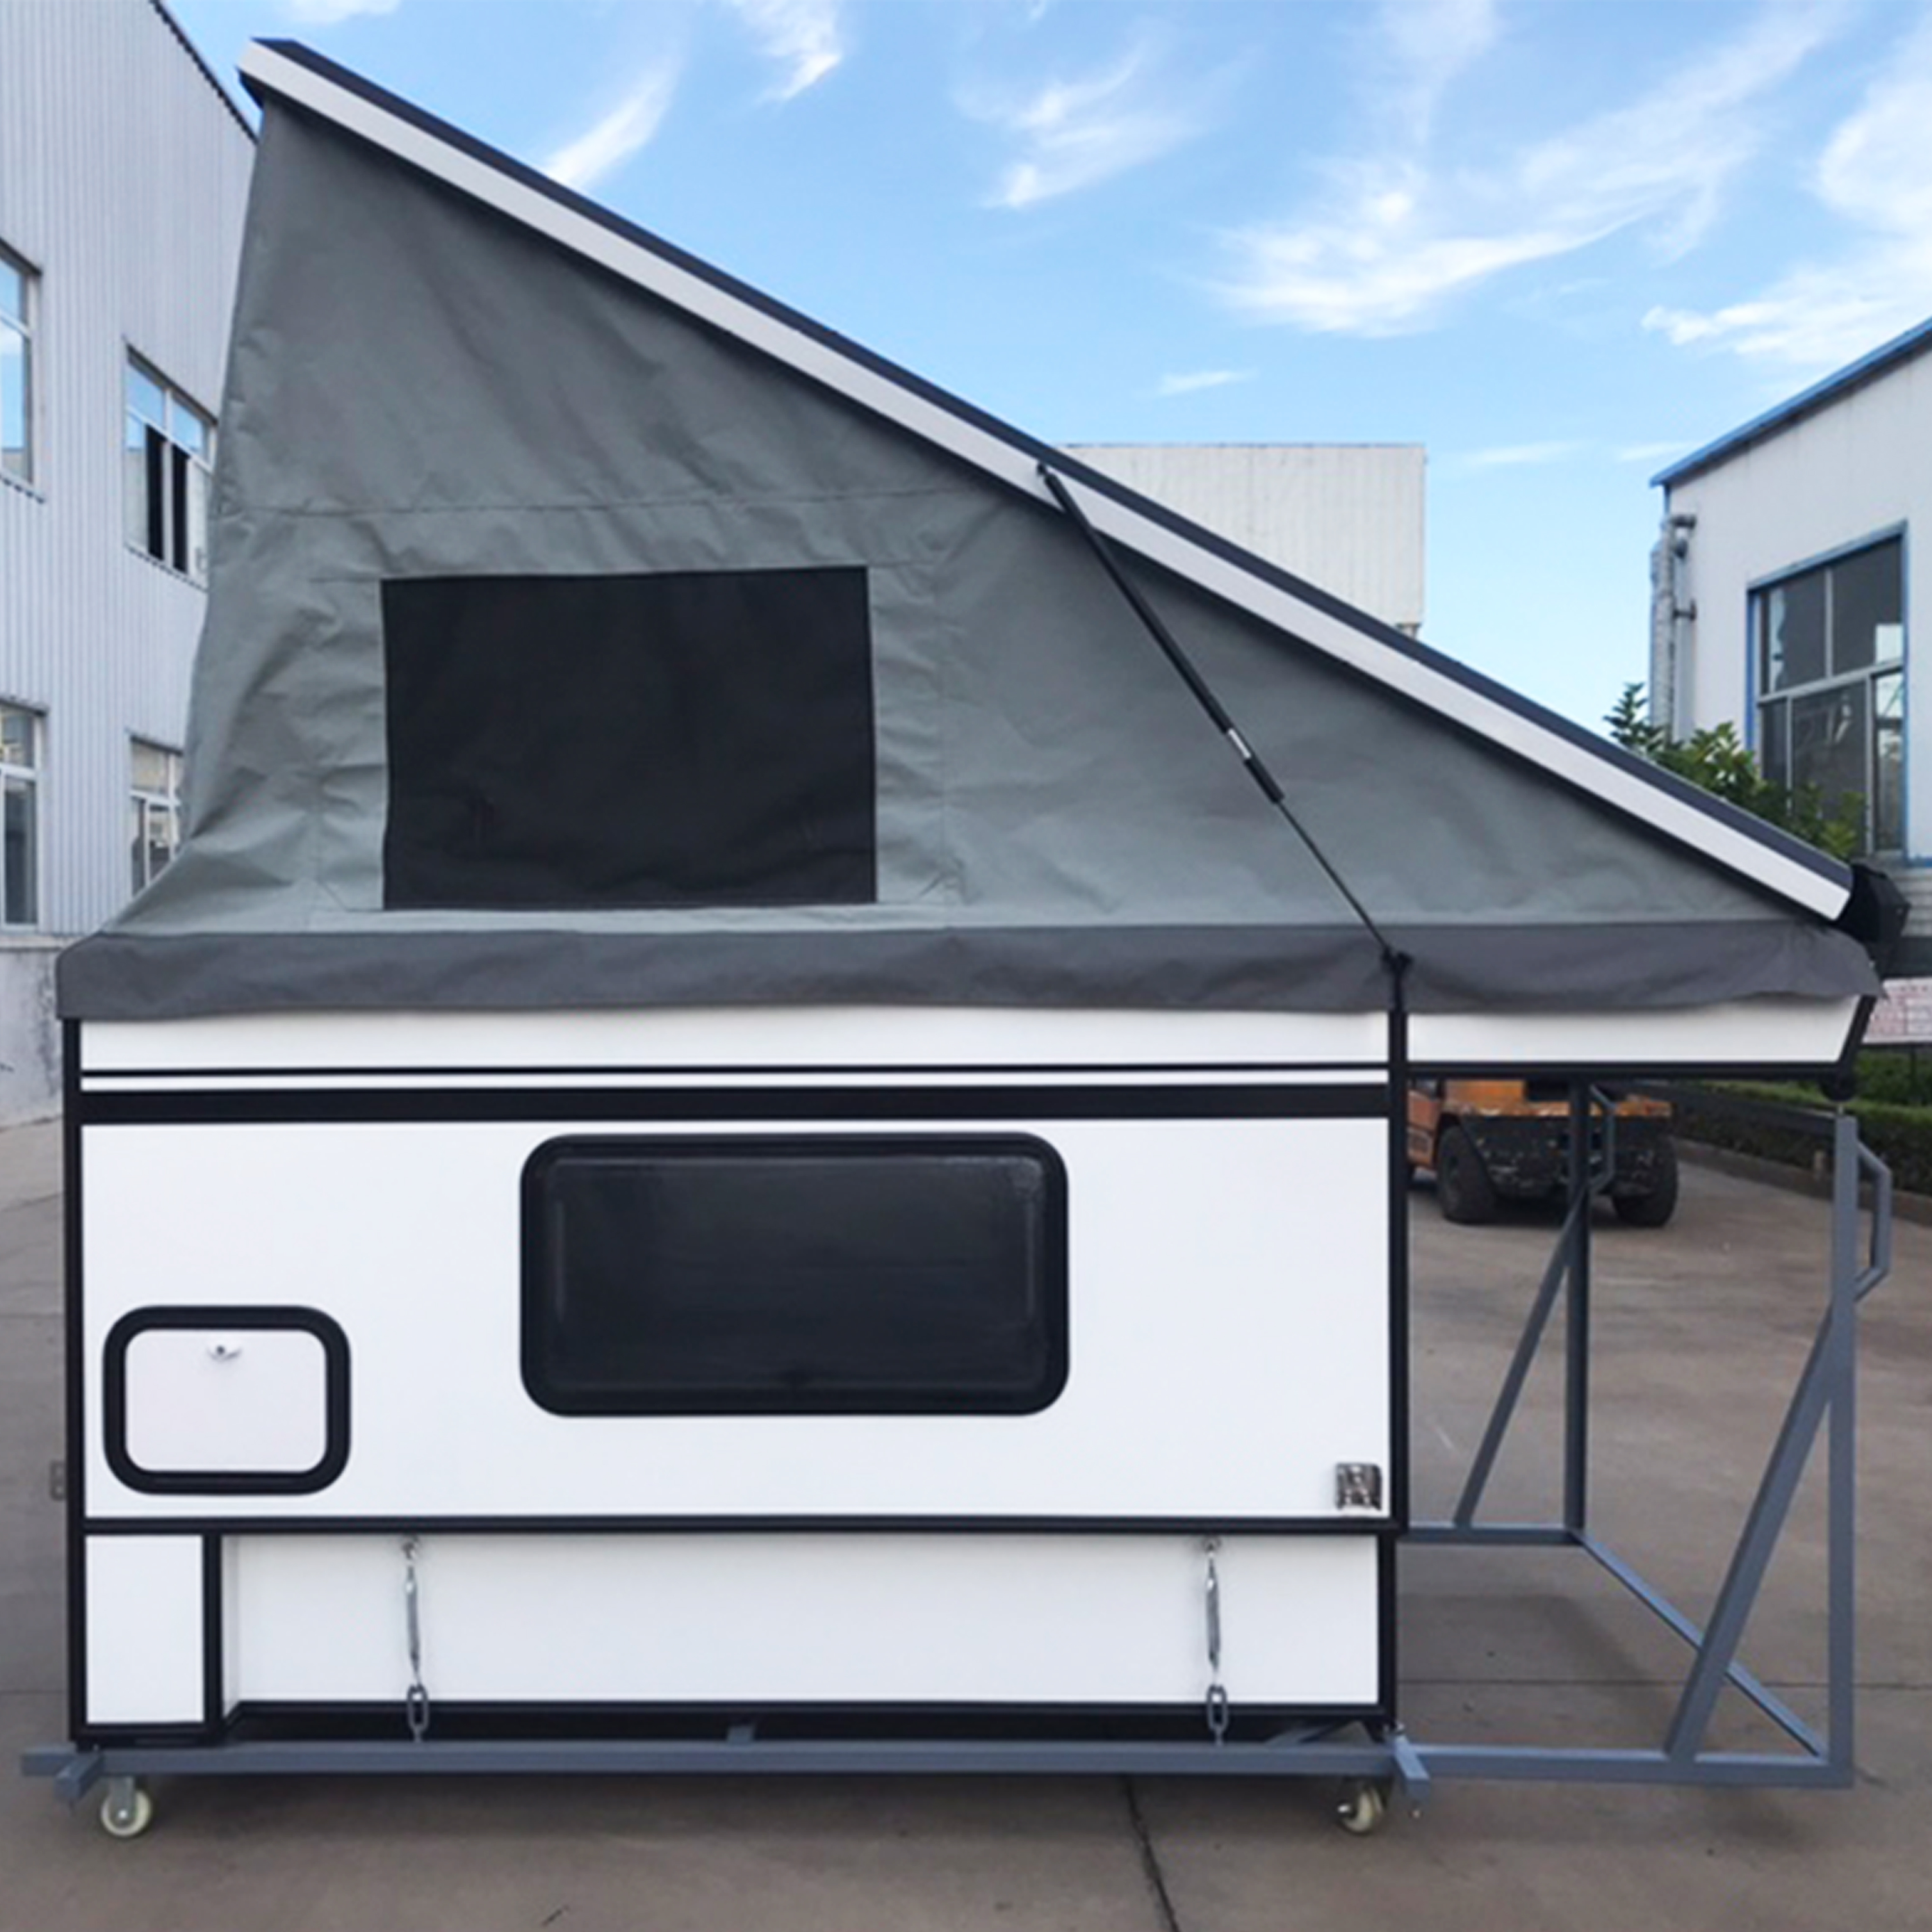 8 Ft Camping Trailers Pickup 2.4M 2020 New Hottest Selling Small Lightweight 4 Season 4X4 Pick Up Truck Slide Camper Trailer